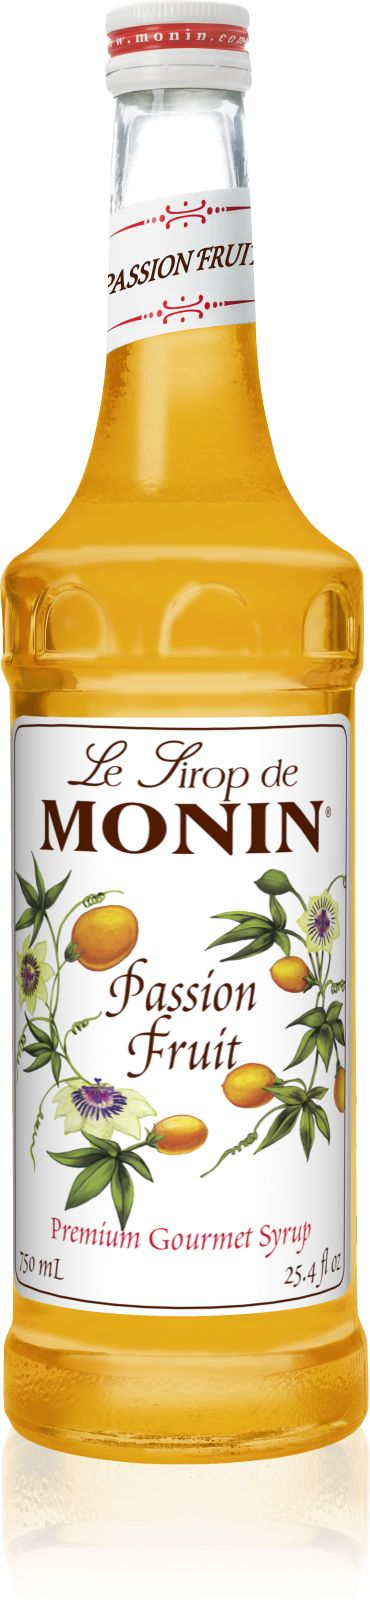 Monin Syrup - Passion Fruit